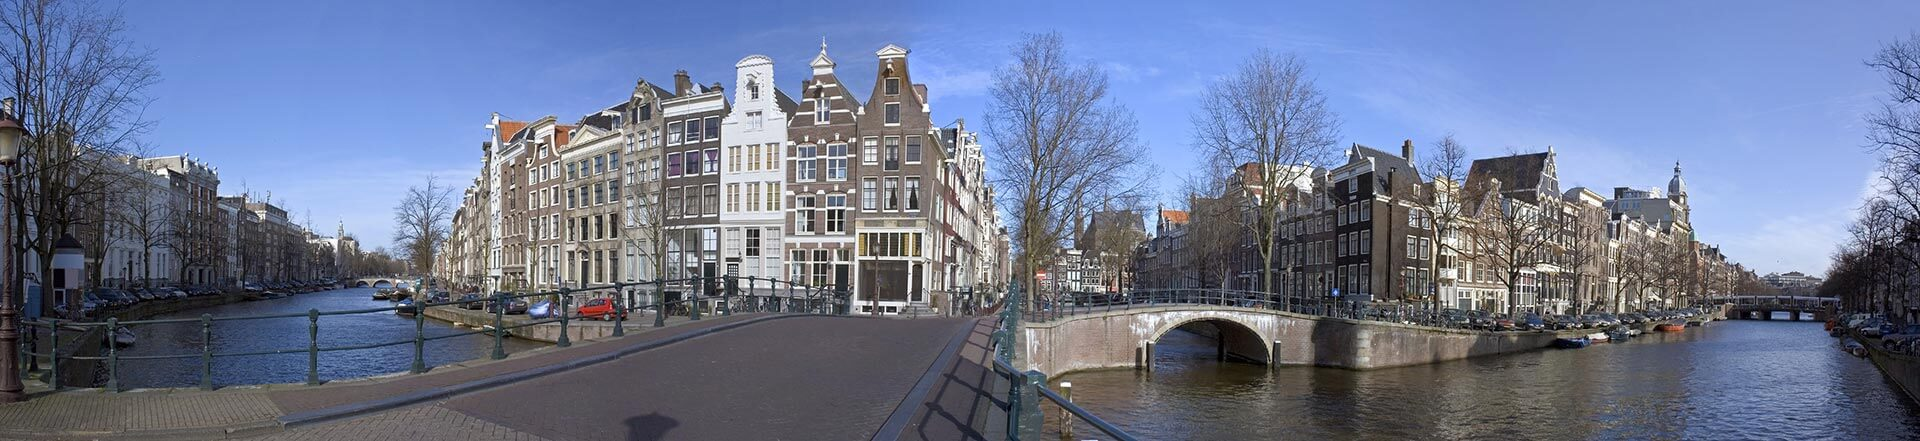 Labour conflict lawyer in Amsterdam: what disciplinary measures are possible?